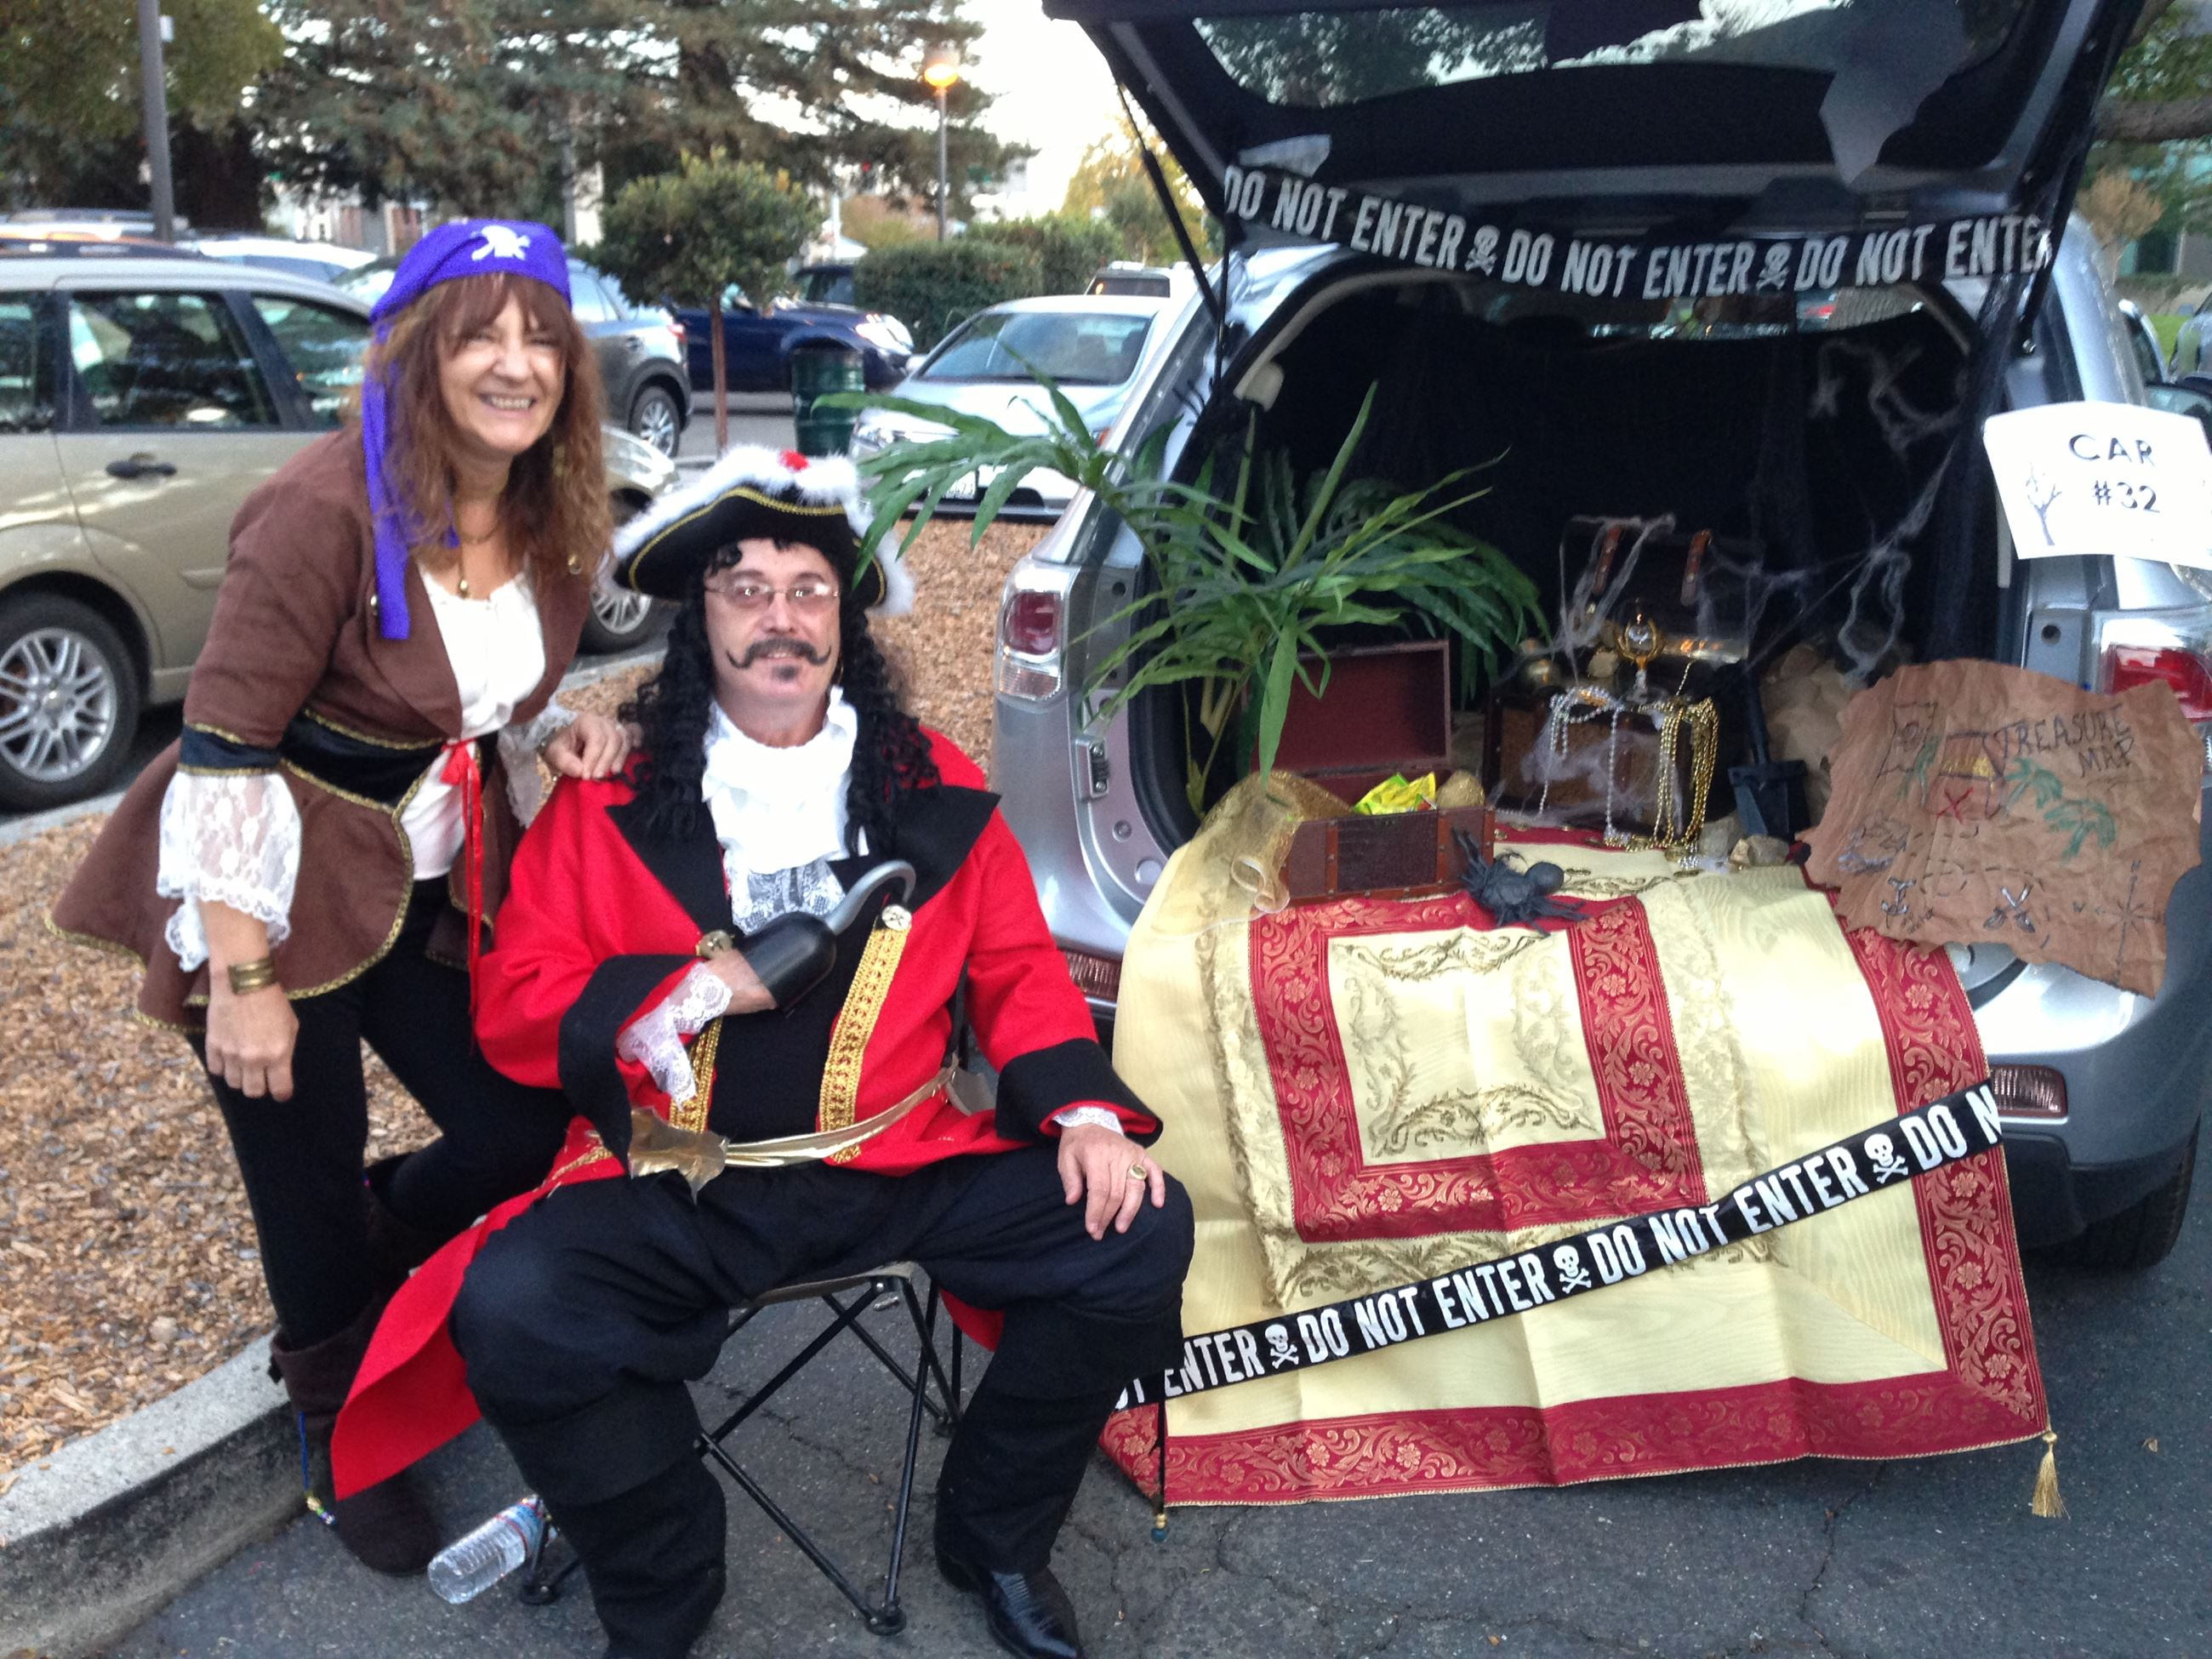 Adults in pirate costumes next to priate theme car trunk